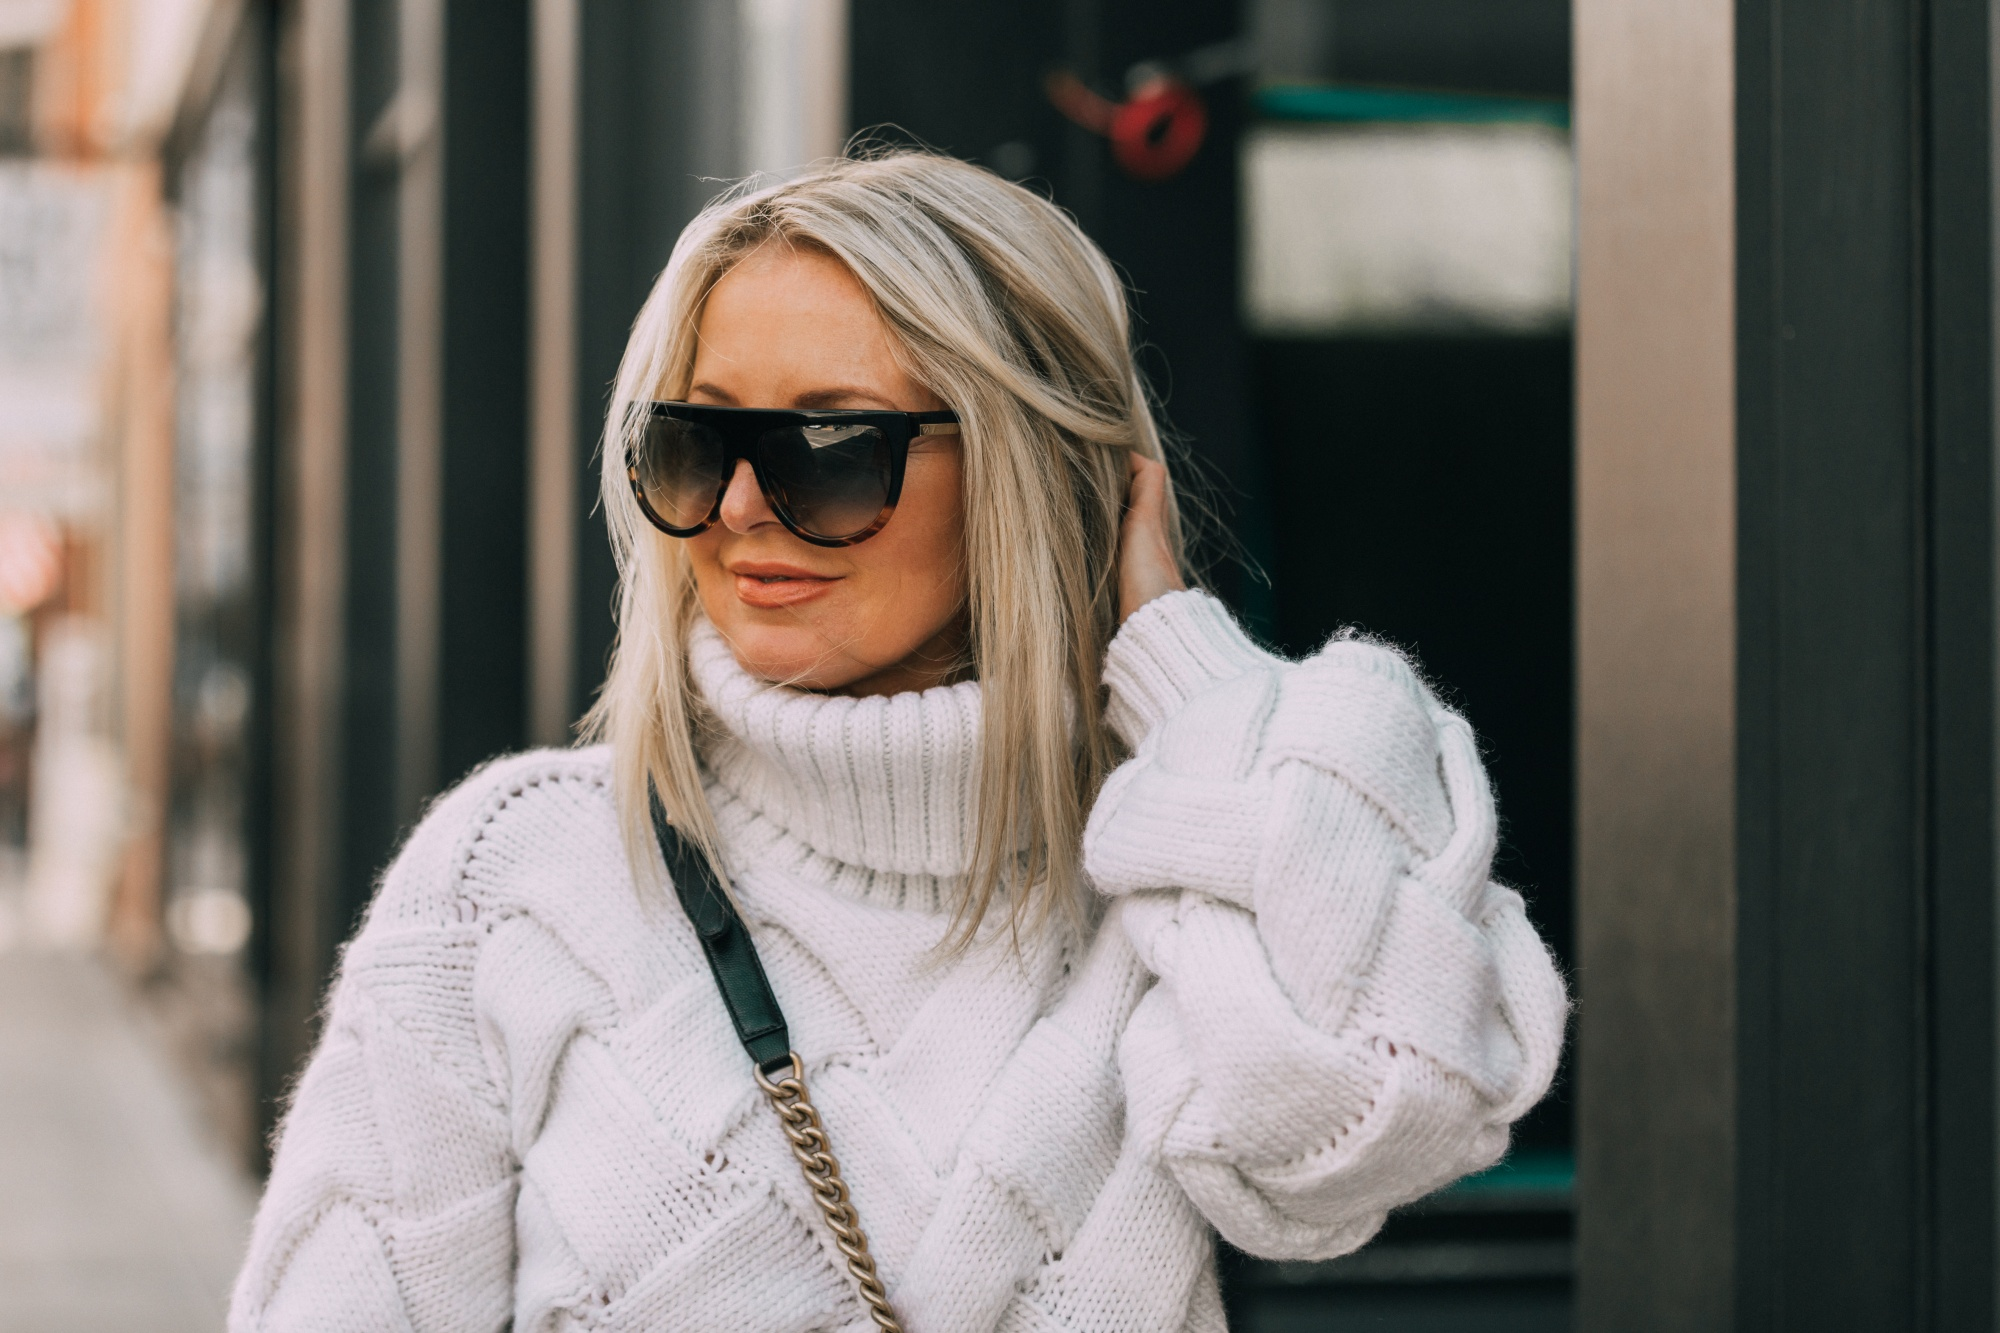 fashion blogger showing how to style dad sneakers in outfit with white chunky sweater for fall chanel handbag